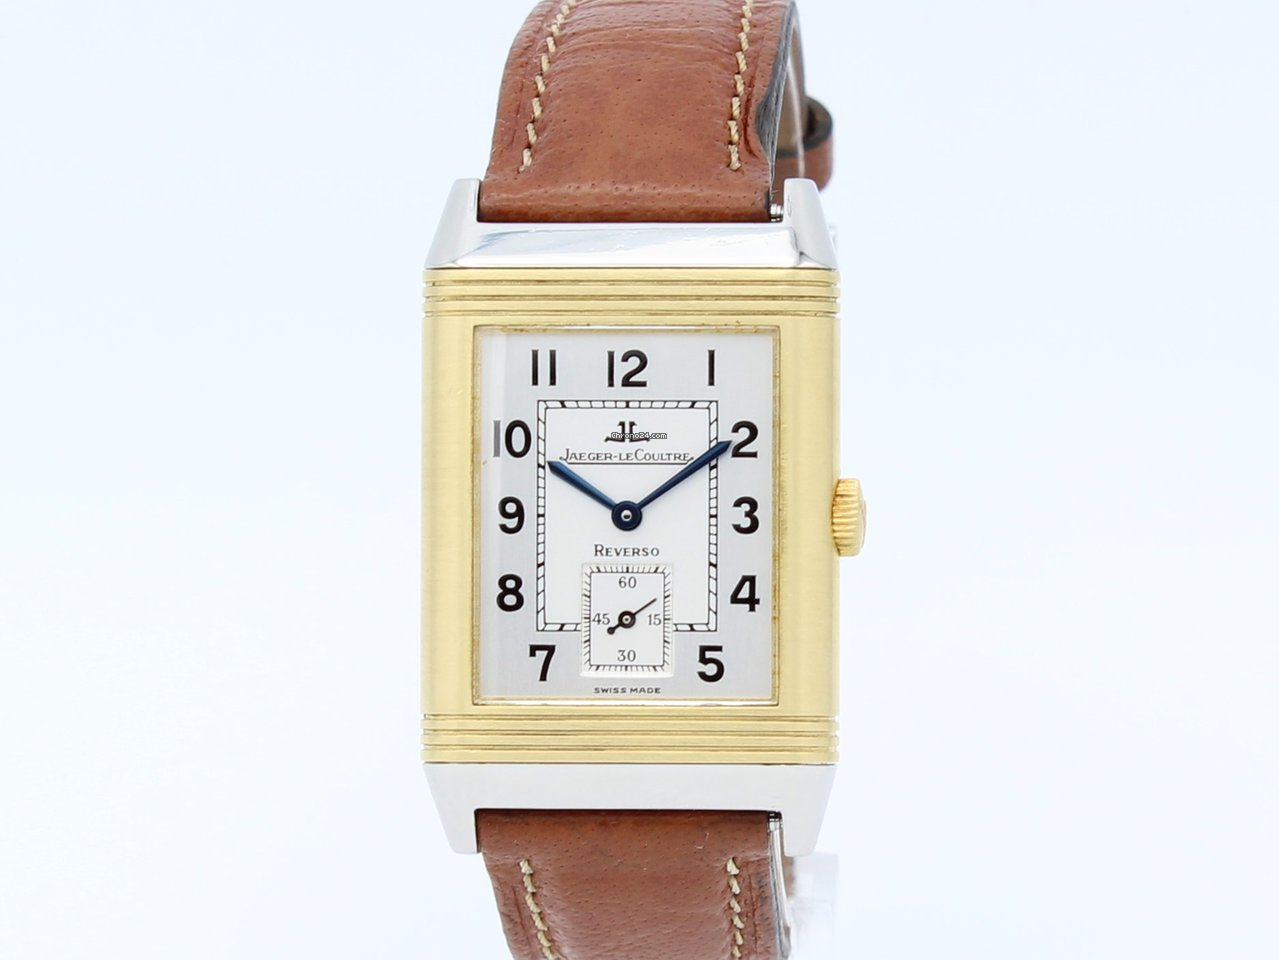 b828475ce247 Jaeger-LeCoultre Reverso Classic Manual Winding Steel-Gold... for Rp.  64